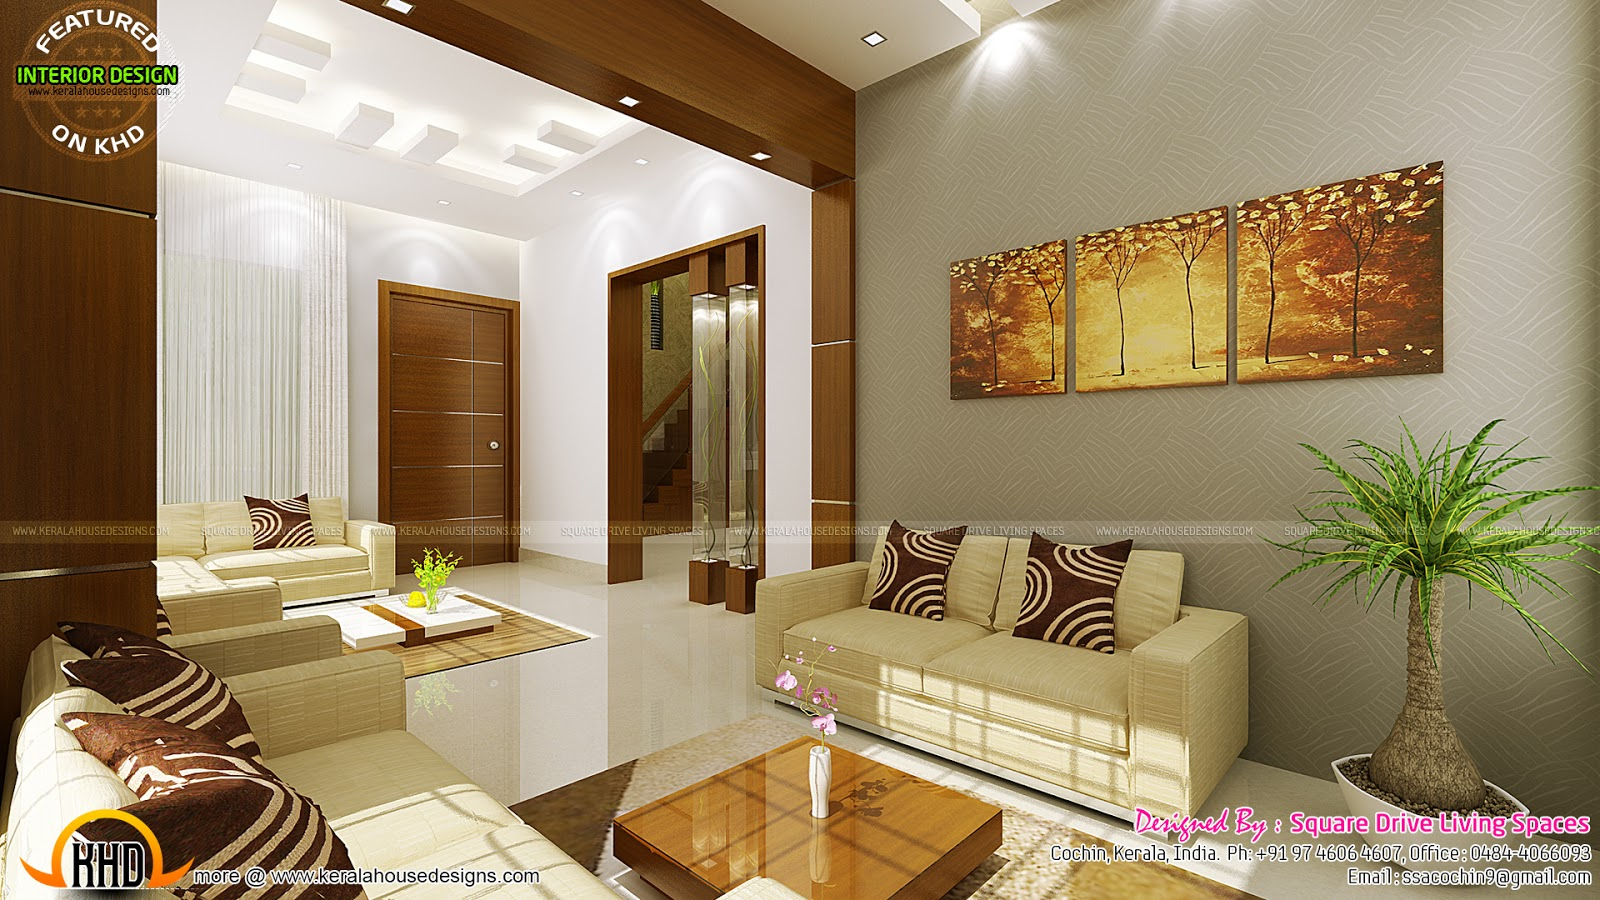 Contemporary kitchen dining and living room kerala home for Interior design ideas living room dining room